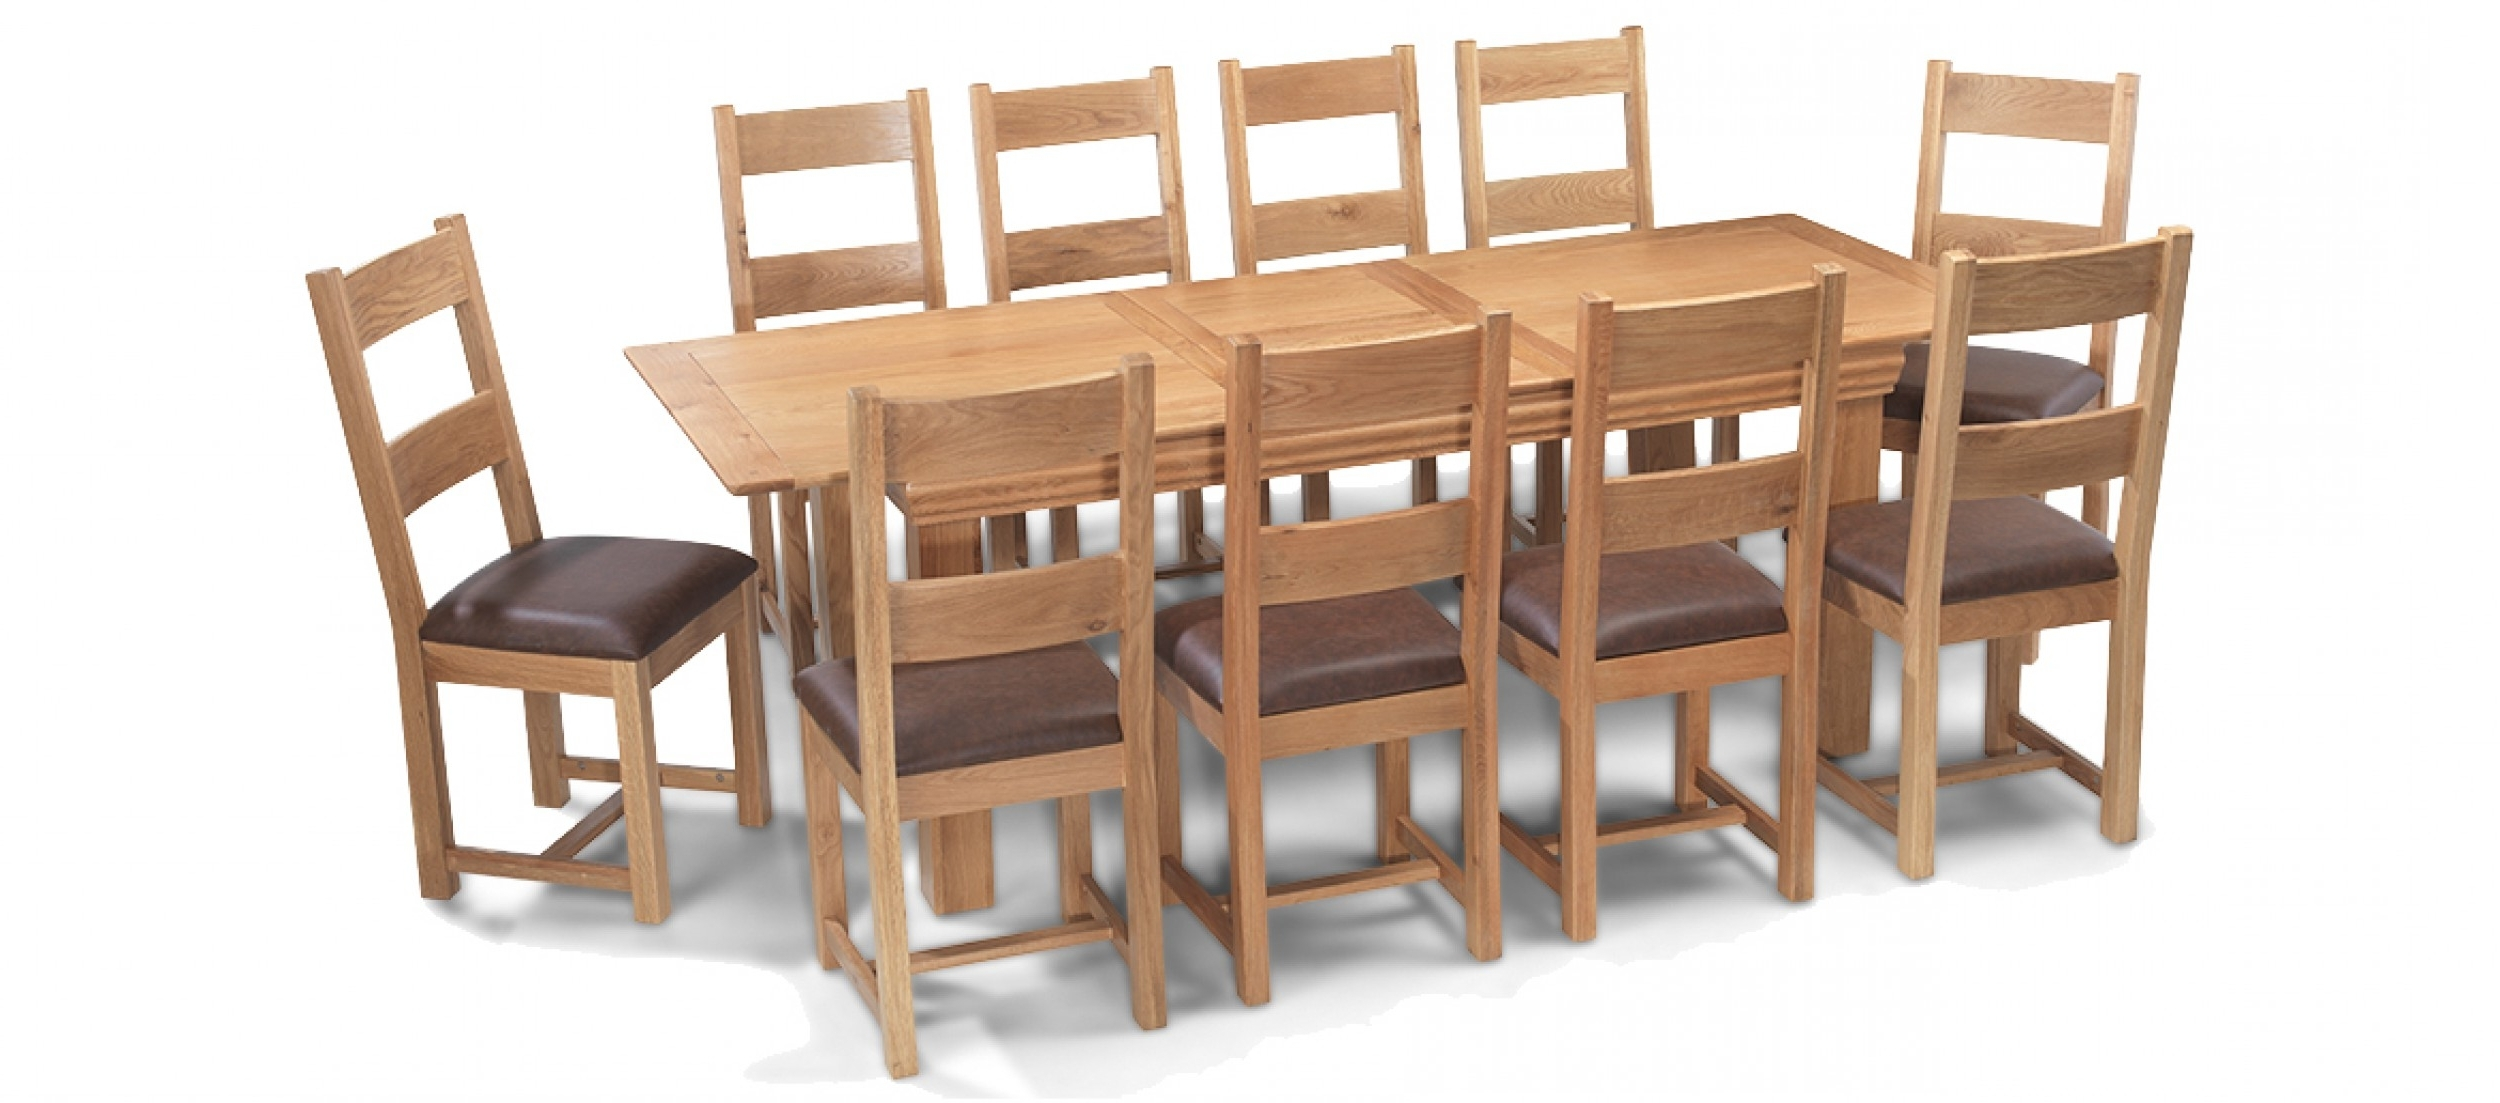 Widely Used Constance Oak 180 230 Cm Extending Dining Table And 10 Chairs Intended For Extended Dining Tables And Chairs (View 23 of 25)